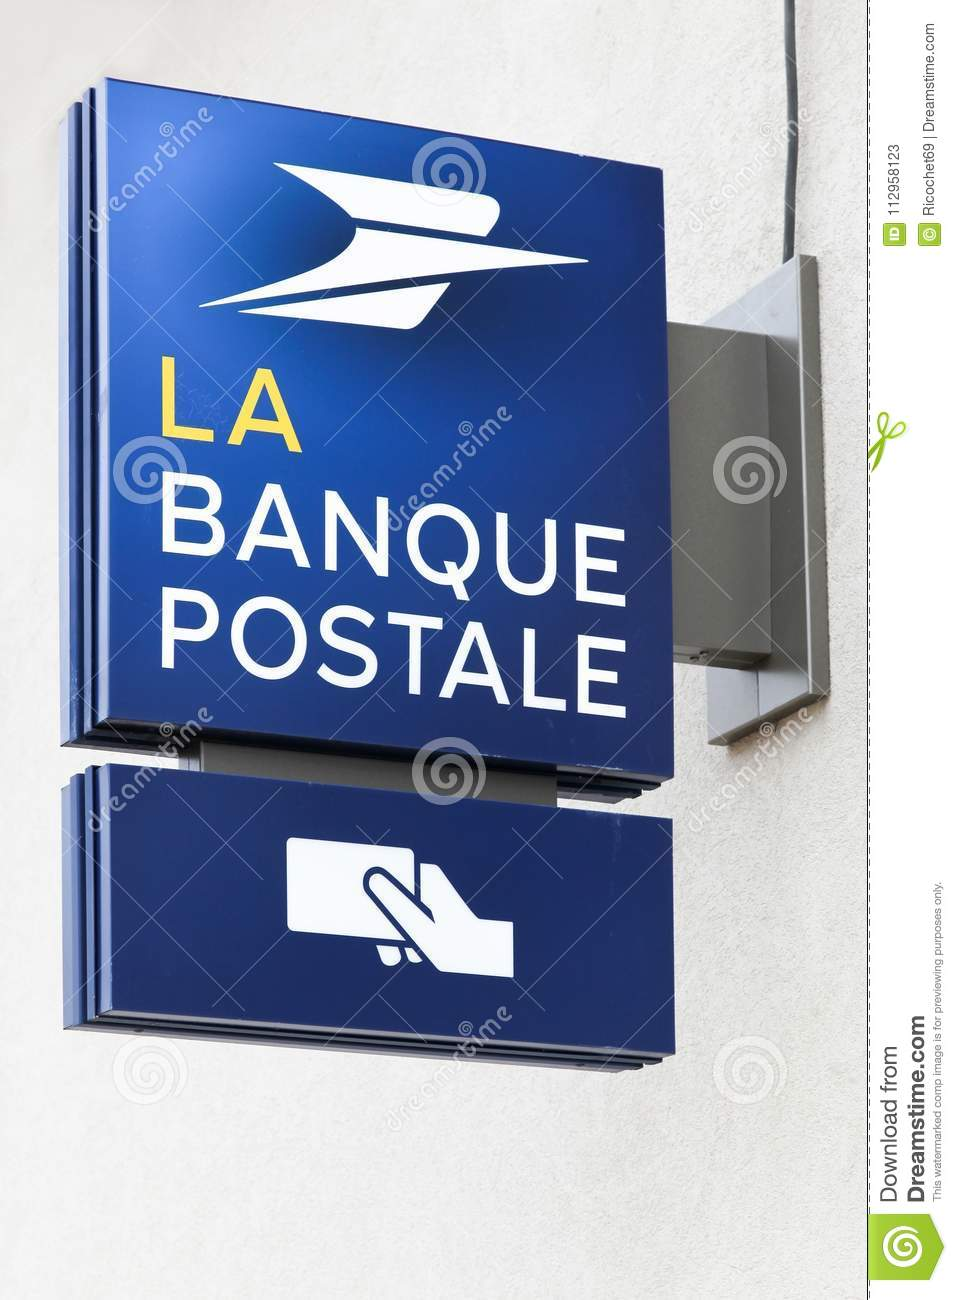 Banque Image Logo banque postale logo on a wall editorial stock photo - image of